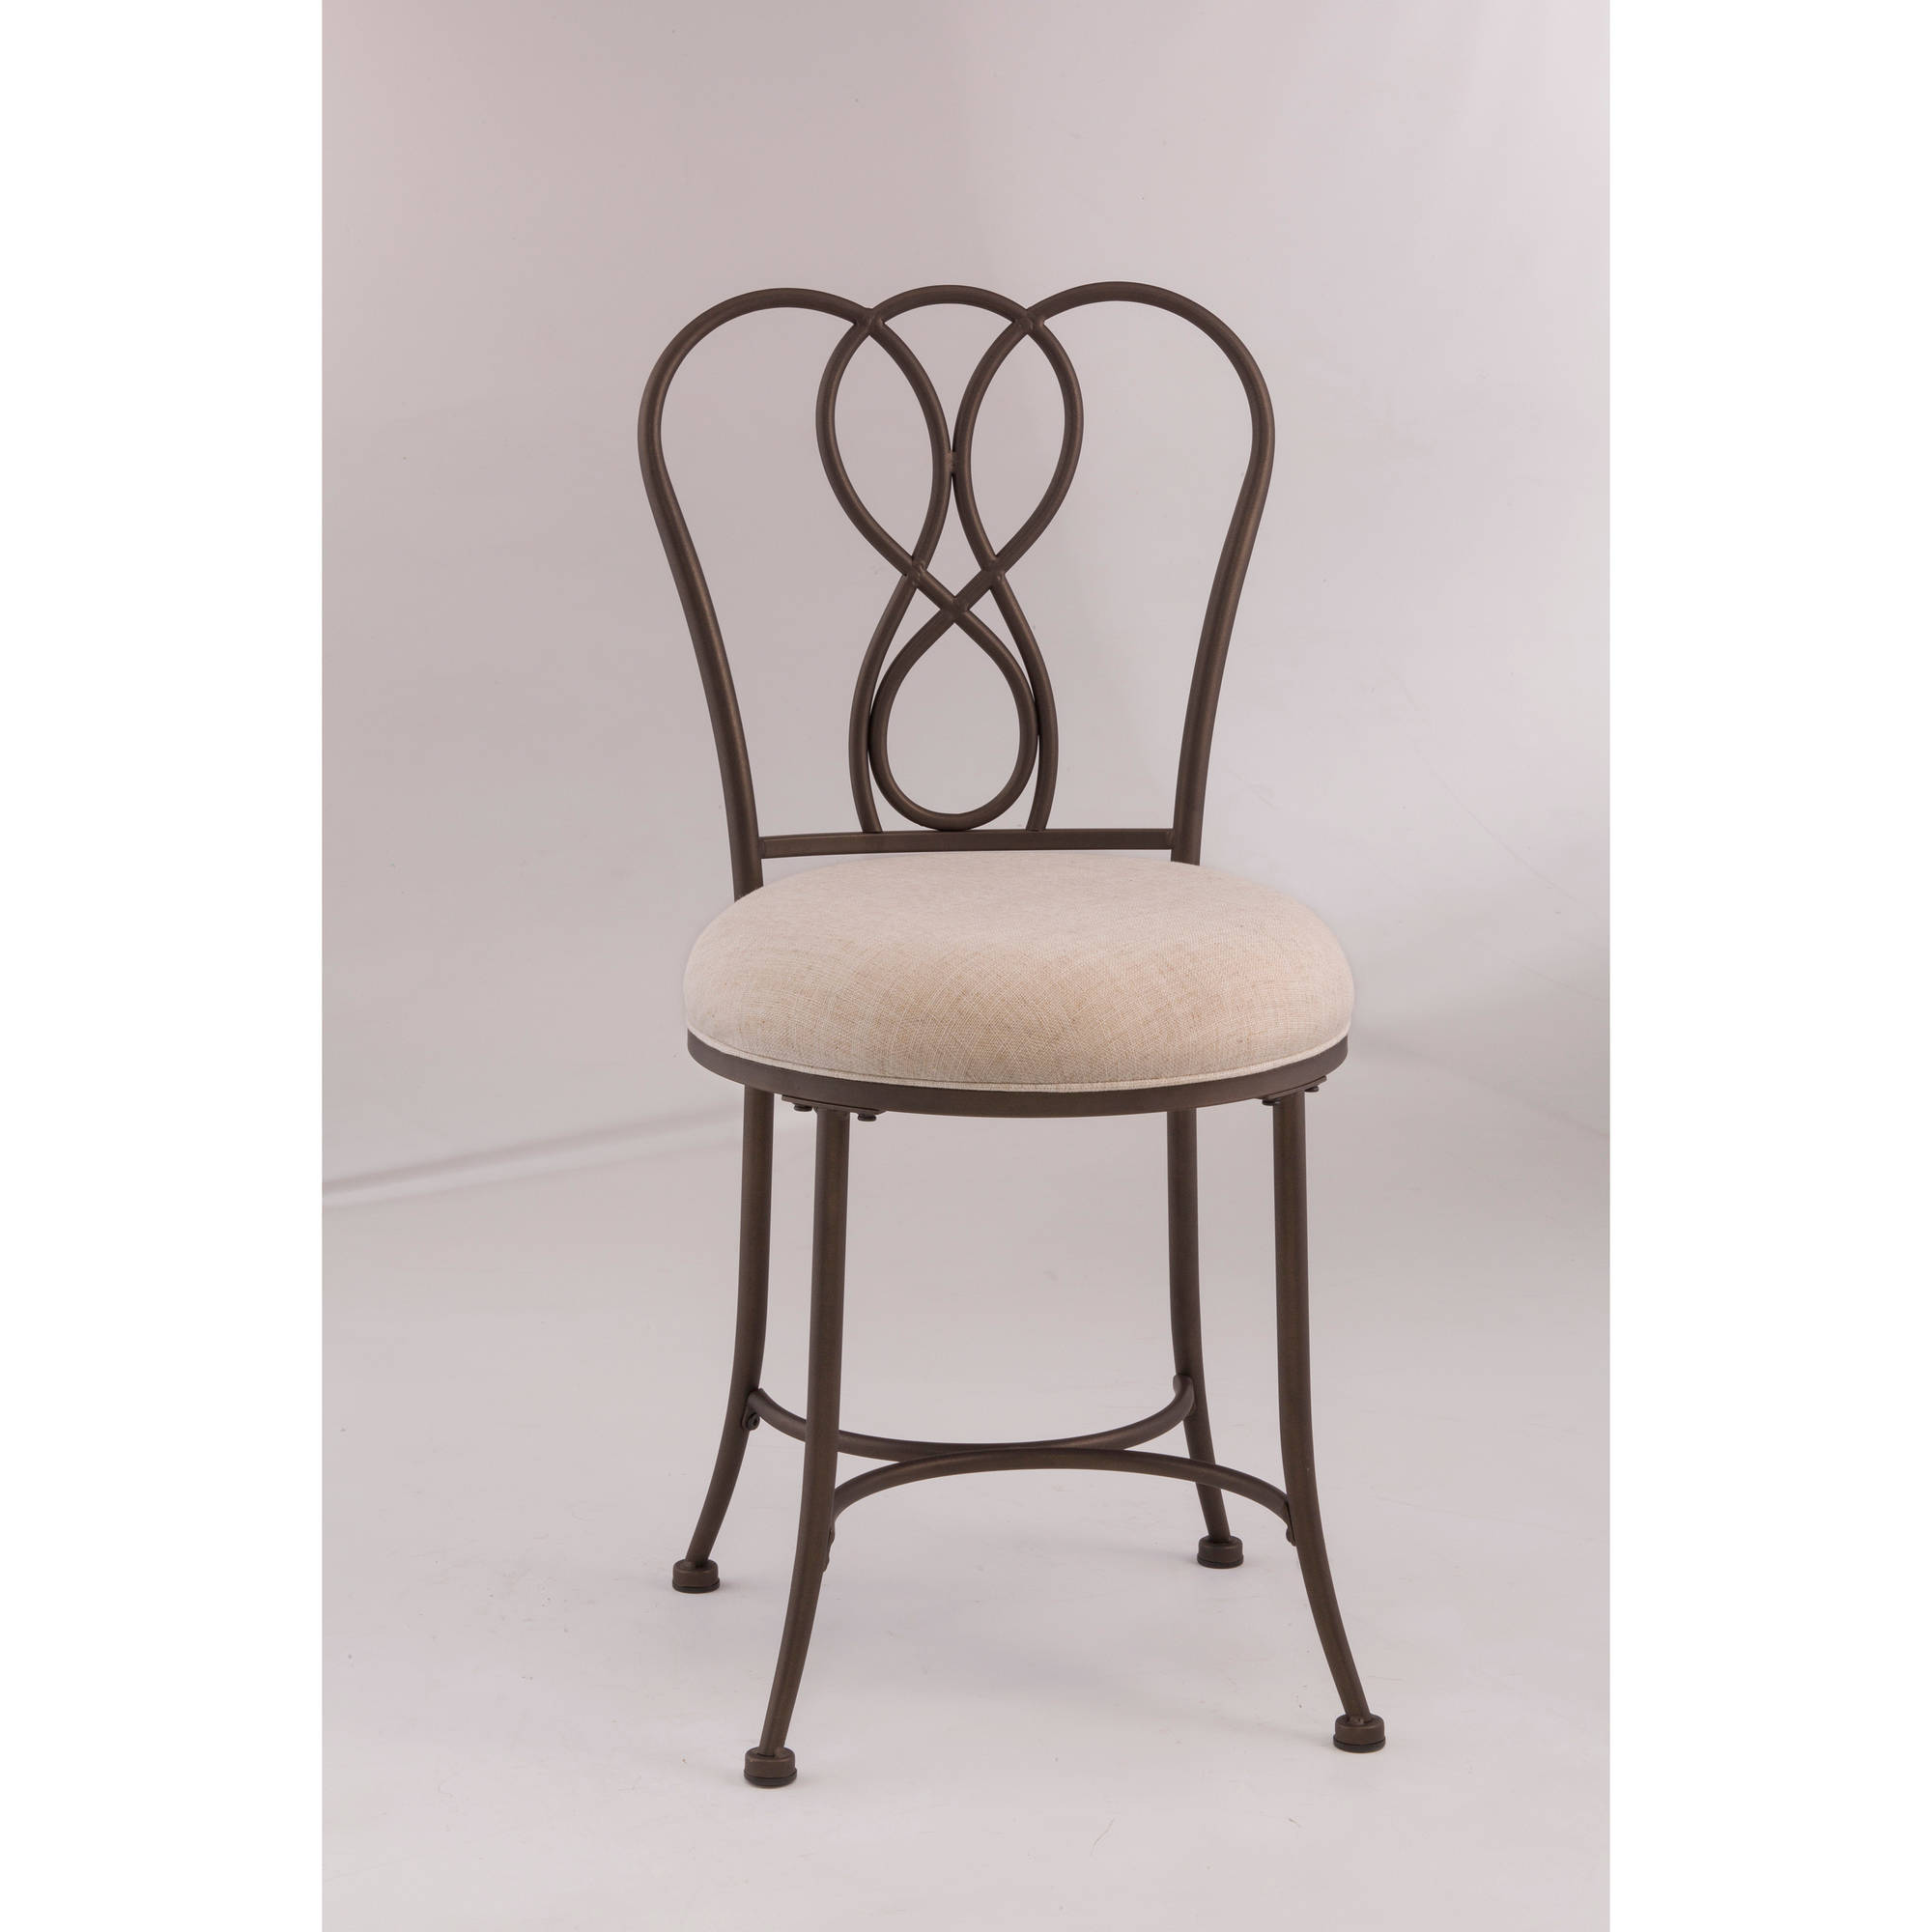 frame stool bathroom wrought backless iron white rubbed bronze oil black polished furniture vanity with stools seat curved upholstered superlative or rounded padded bench combined top